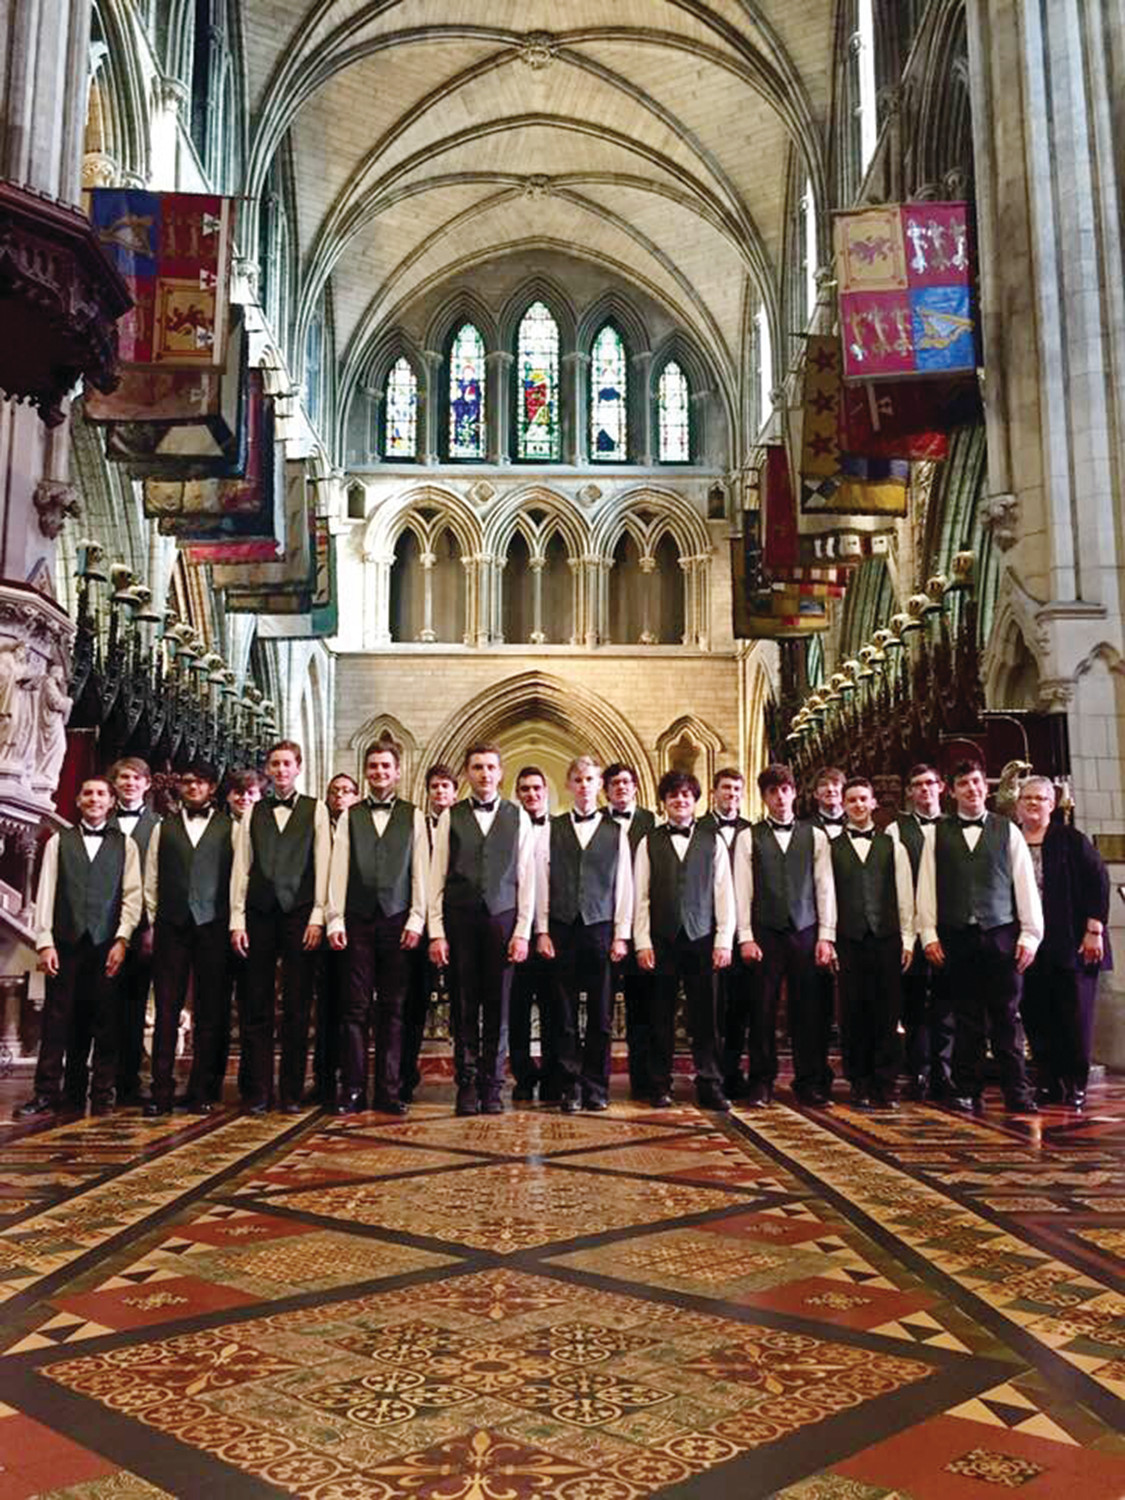 The Bishop Hendricken Young Men's Chorus stands within St. Patrick's National Cathedral of the Church of Ireland during a 10-day pilgrimage.